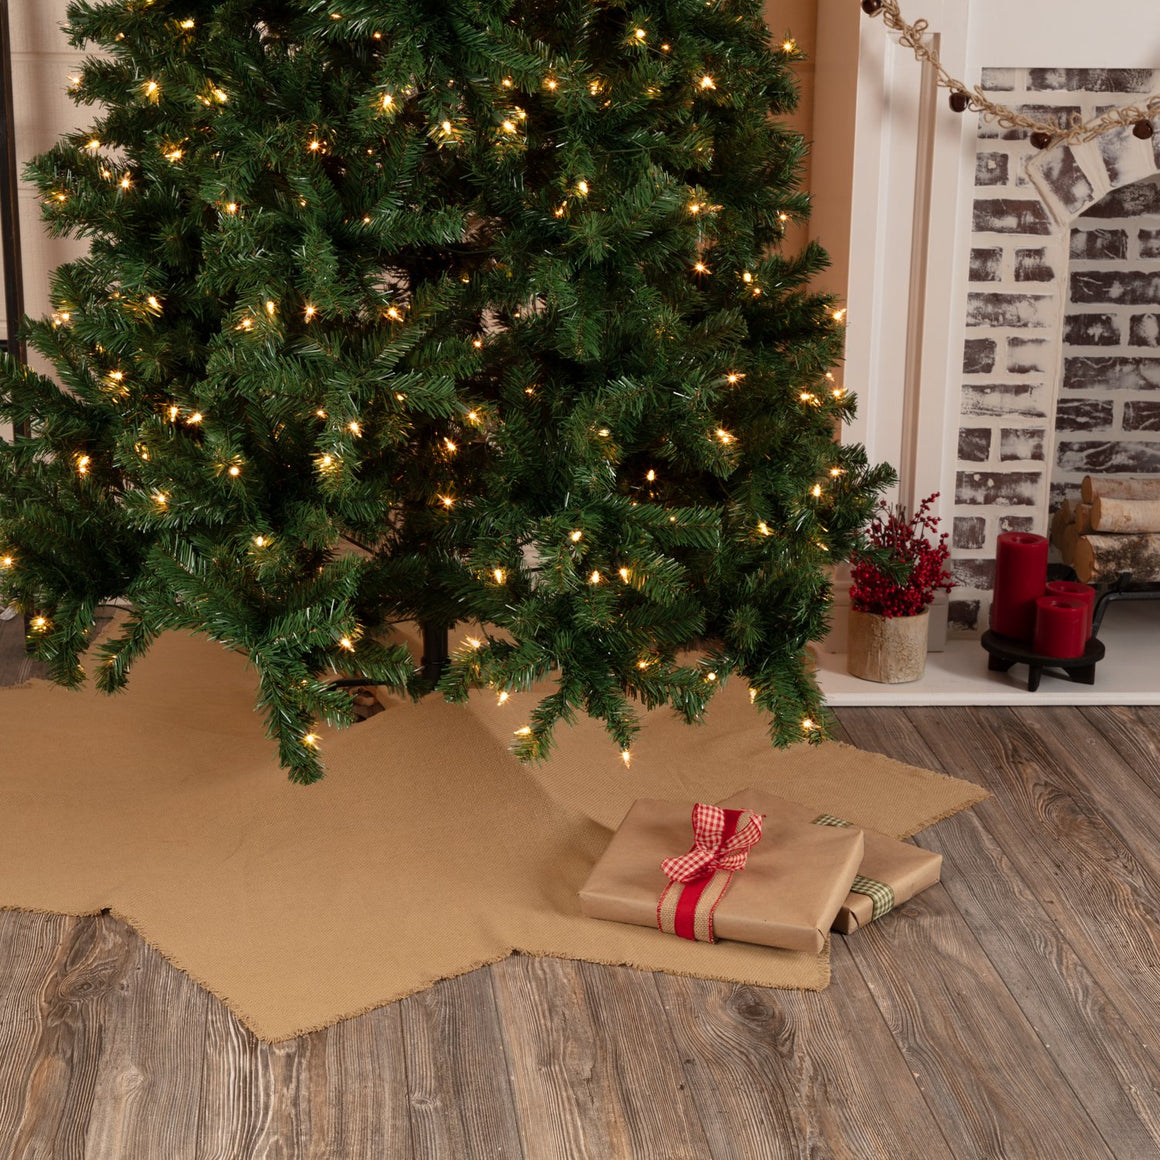 Burlap 8-Point Tree Skirt